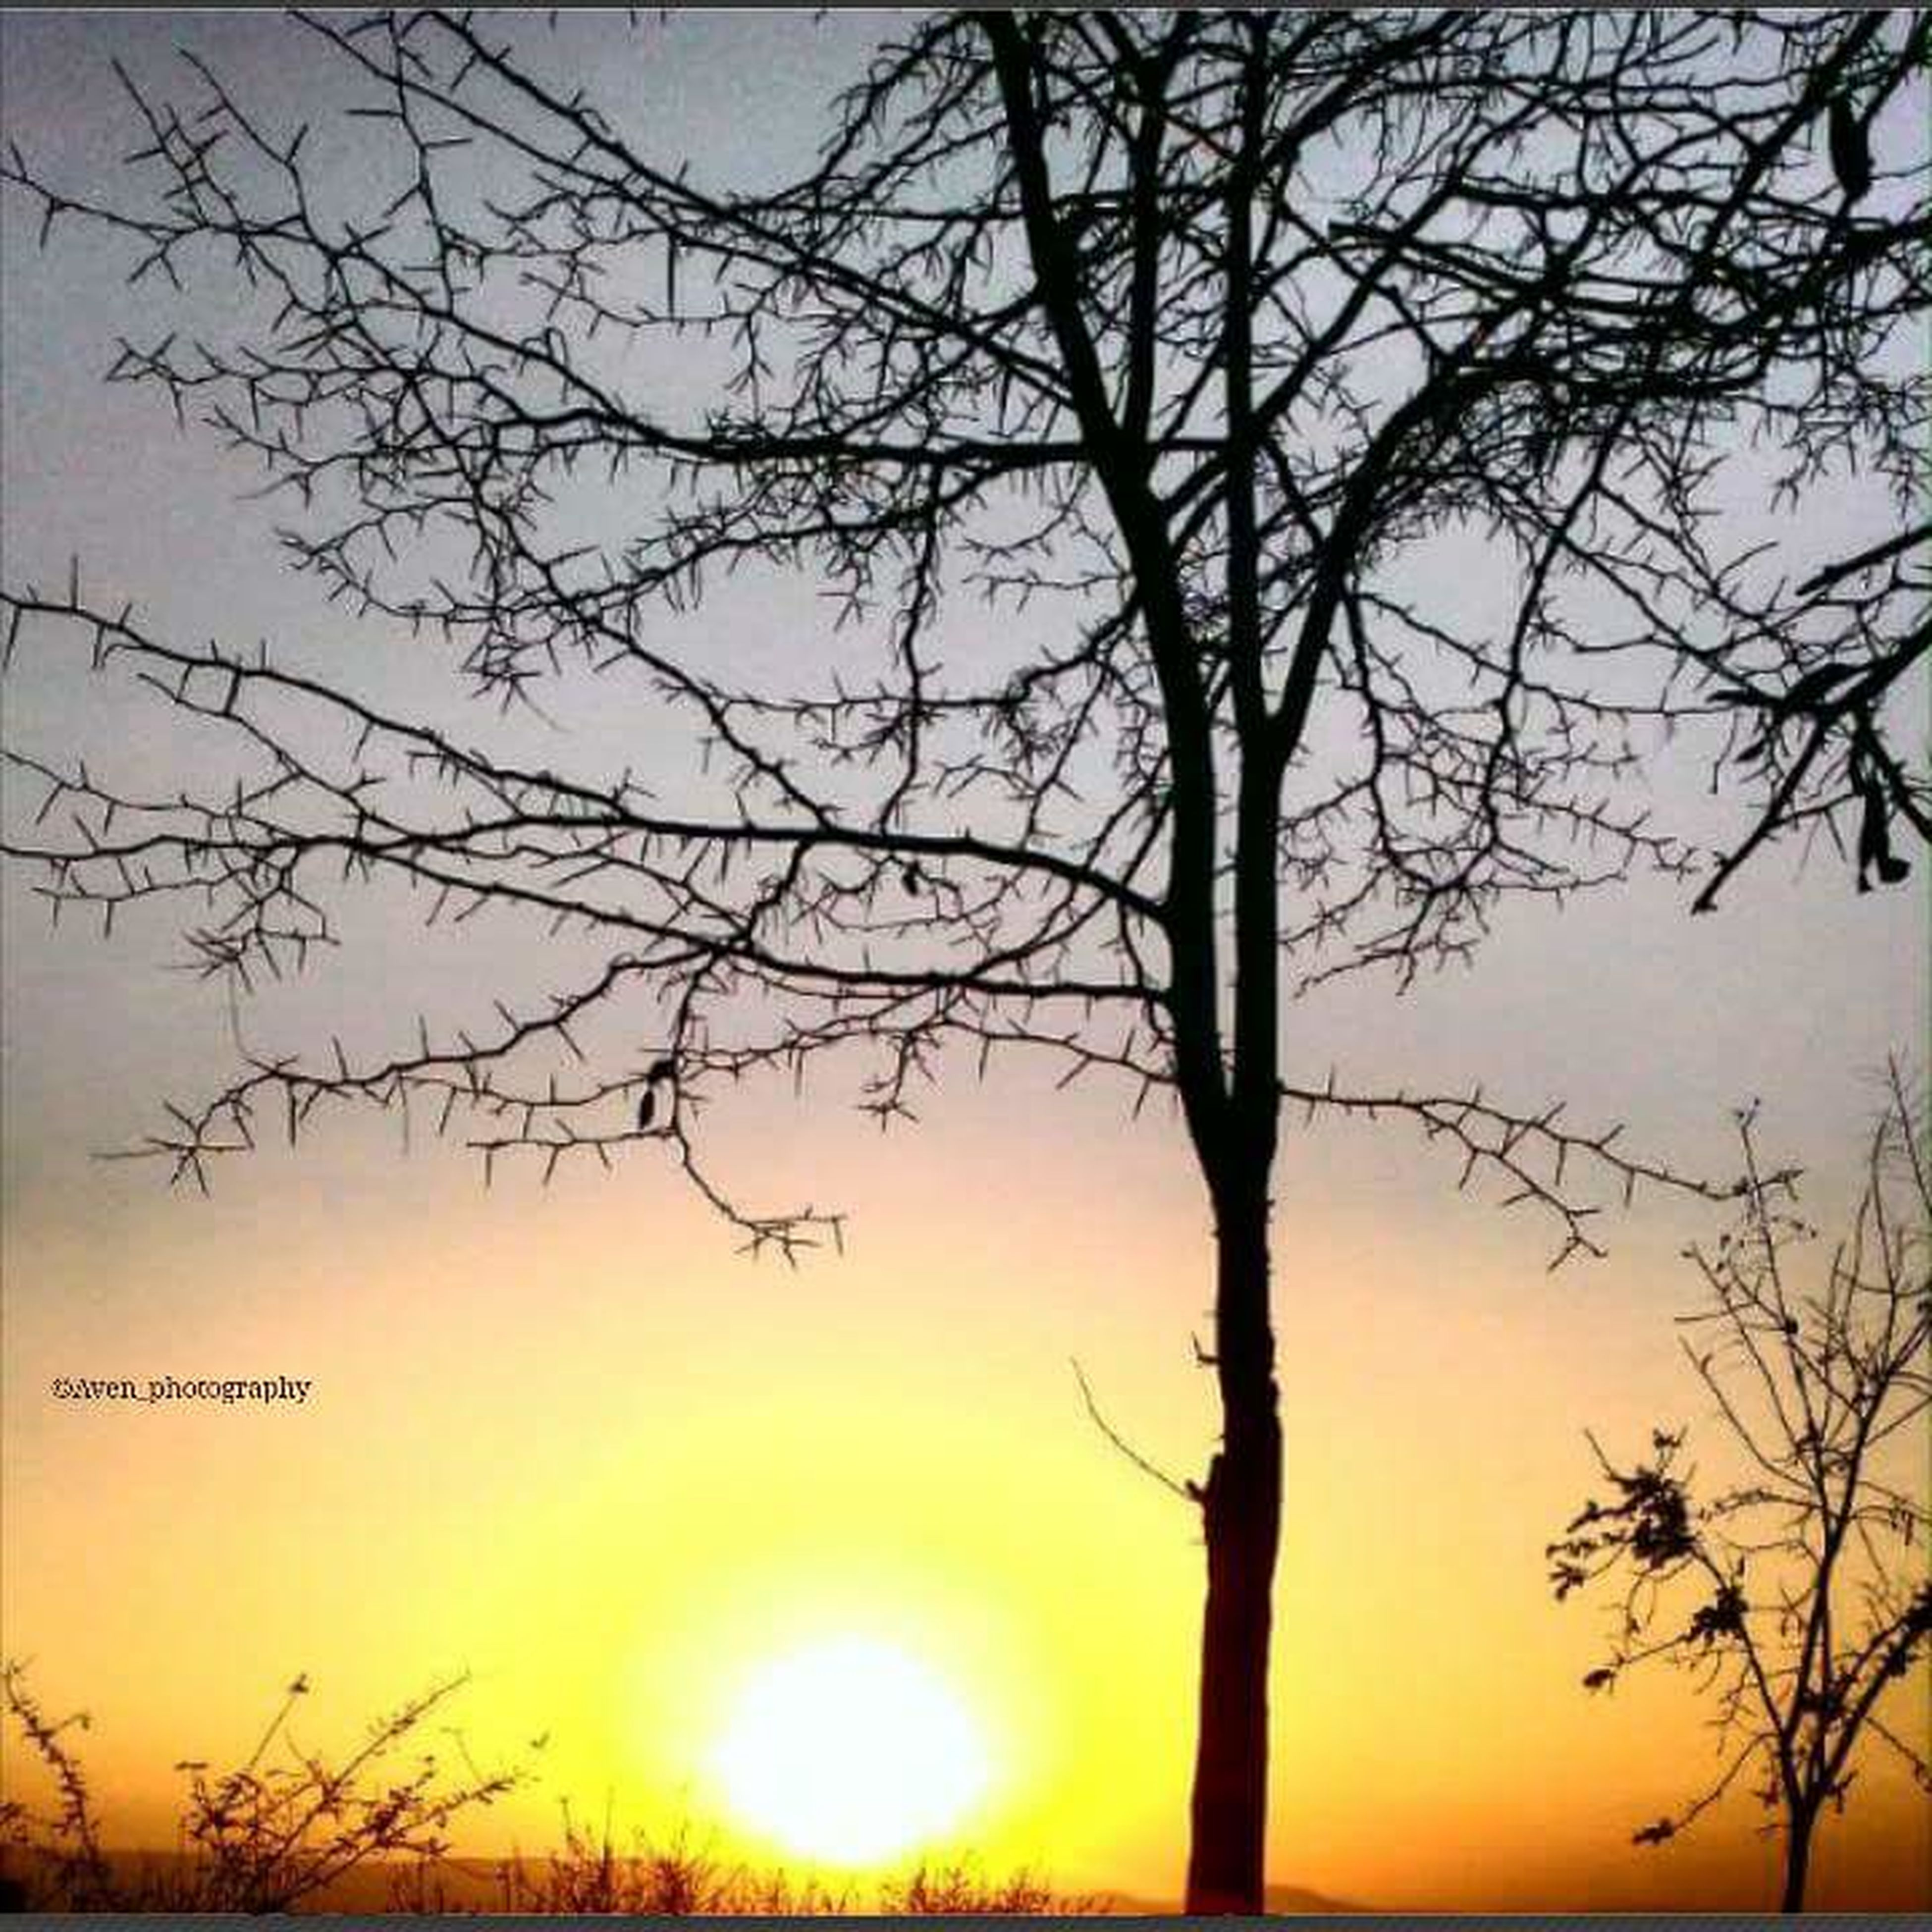 sunset, silhouette, tranquility, bare tree, tranquil scene, scenics, beauty in nature, sun, tree, branch, sky, nature, orange color, idyllic, tree trunk, sunlight, outdoors, no people, non-urban scene, growth